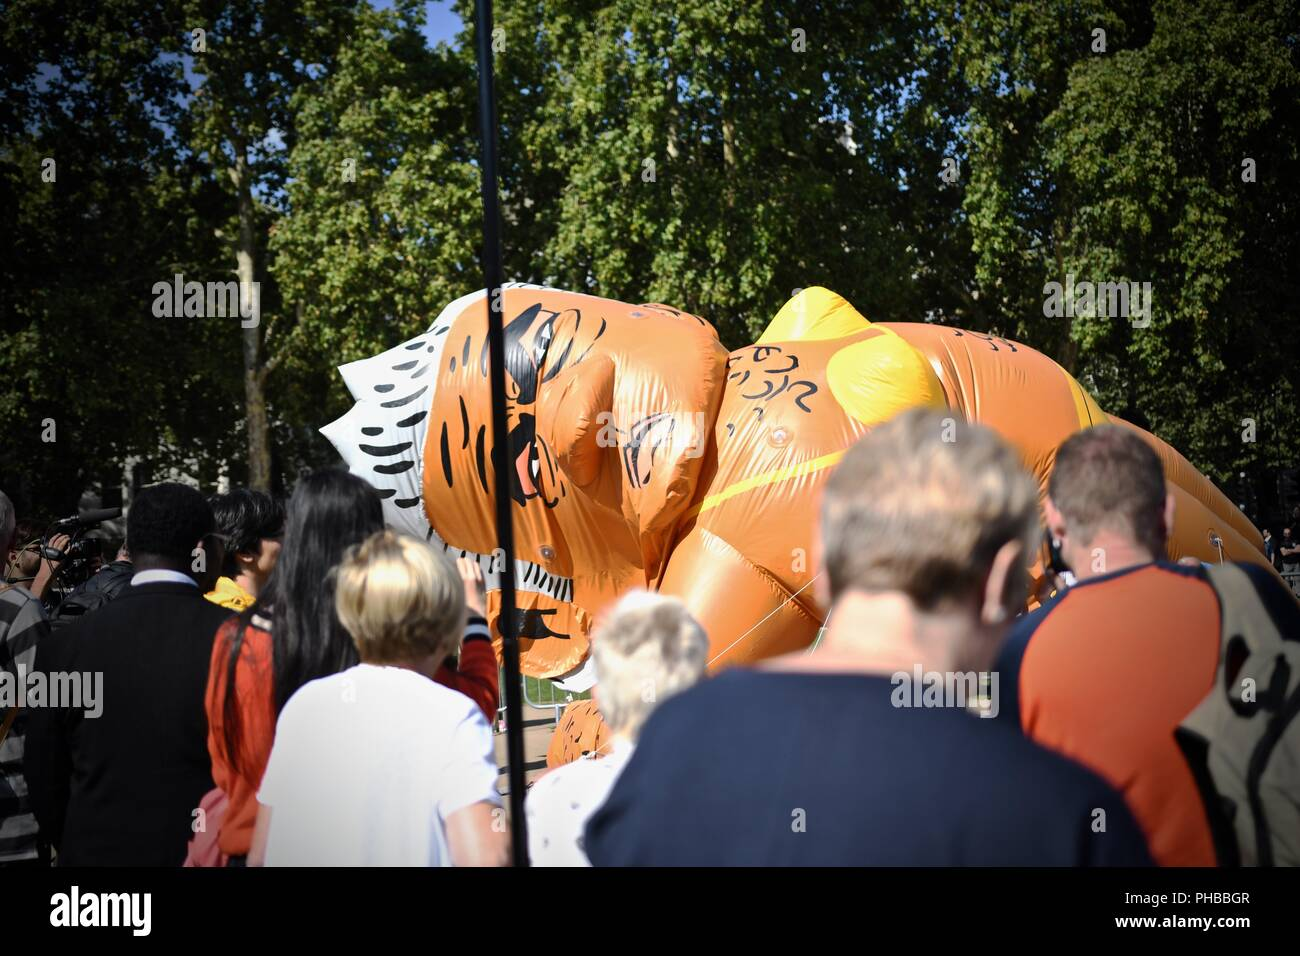 Westminster London United Kingdom 1st of September 2018 - A balloon of Sadiq Khan is flown above Westminster in protest against escalating violent crime in the capital. Credit: Stuart Mitchell/Alamy Live News - Stock Image